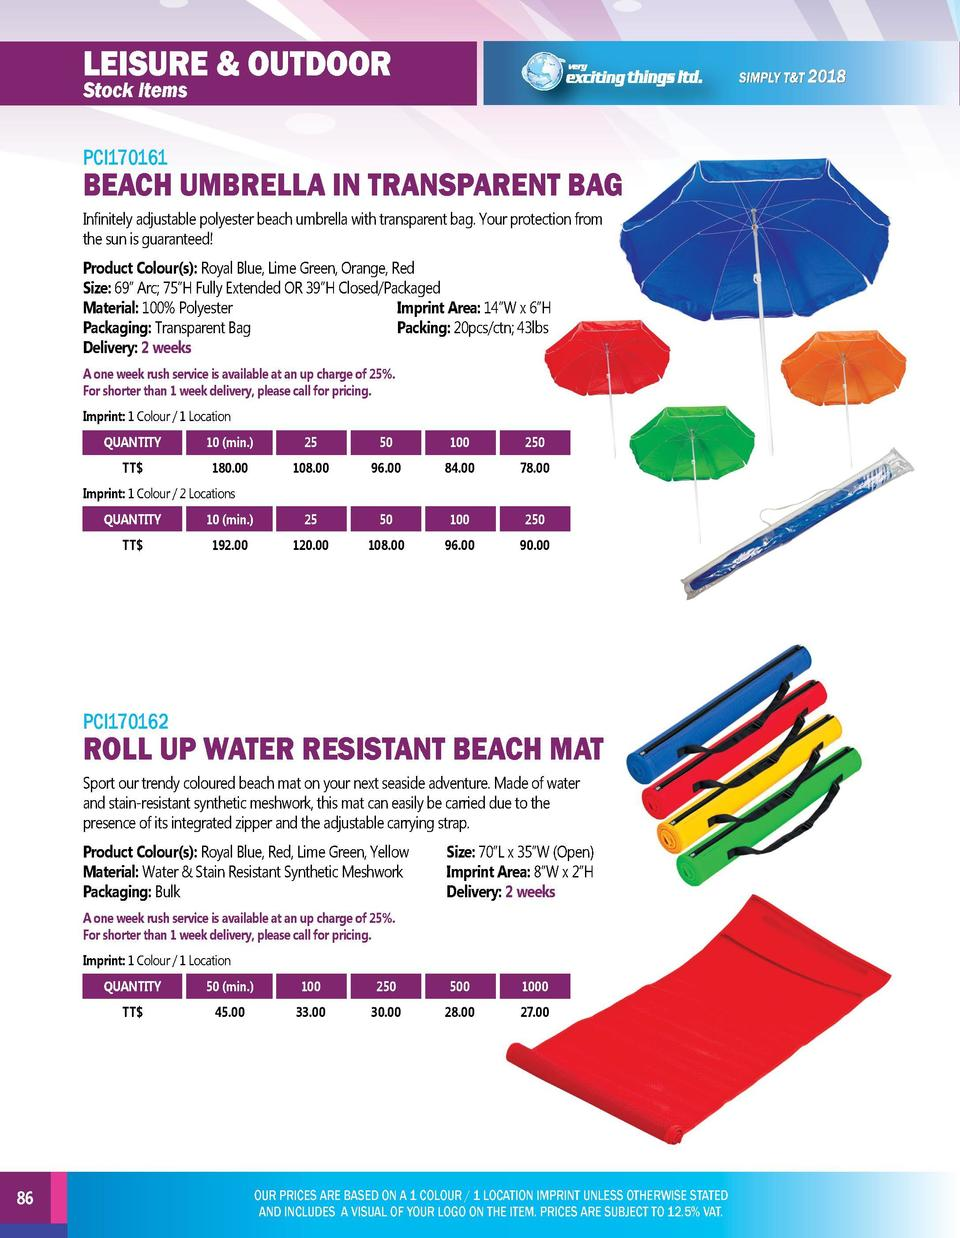 leisure   outdoor  leisure   outdoor  PCI170161  PCI170163  Infinitely adjustable polyester beach umbrella with transparen...